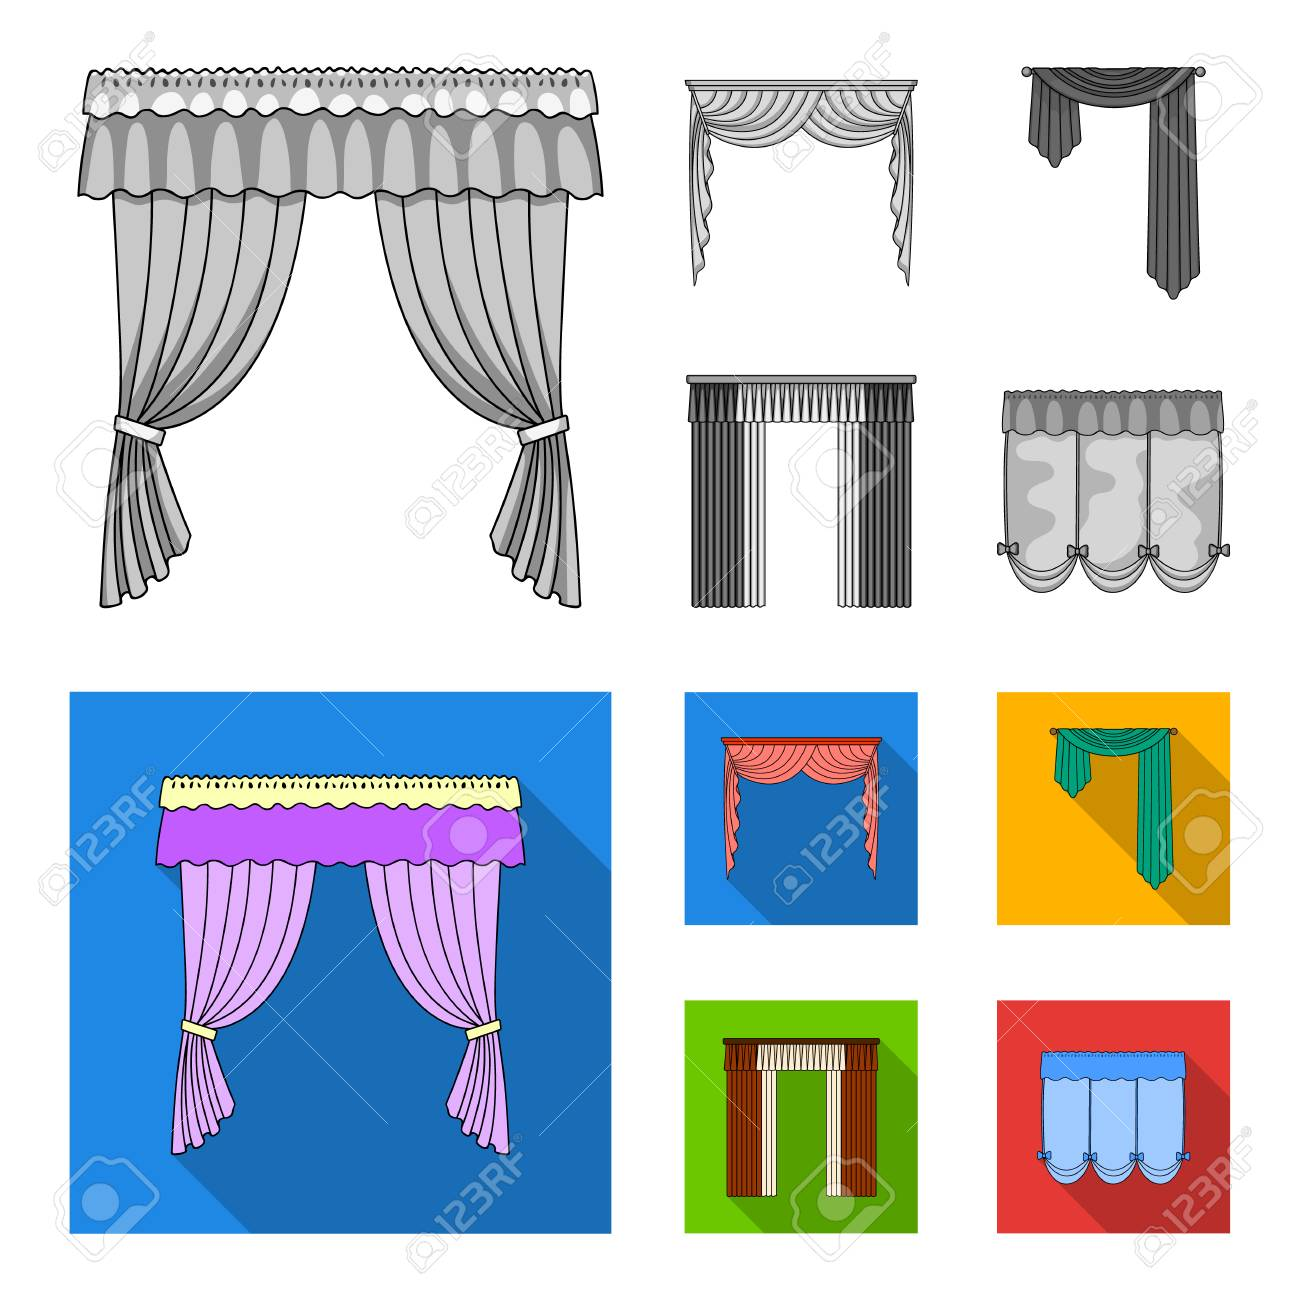 different types of curtains for windows treatments different types of window curtains curtains set collection icons in monochrome flat style vector types of window curtains set collection icons